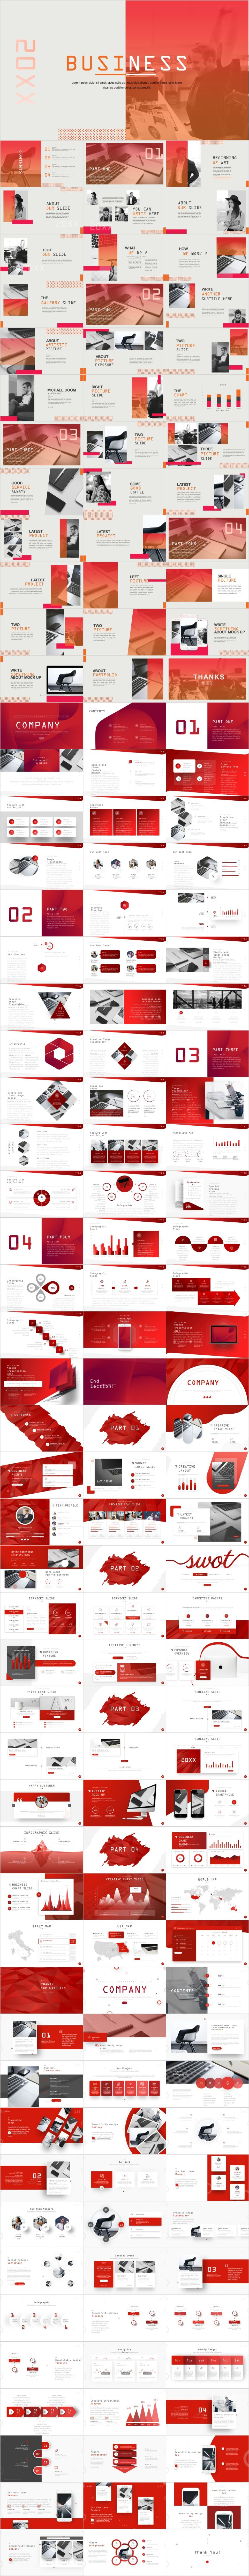 4 in 1 Red Business PowerPoint template #powerpoint